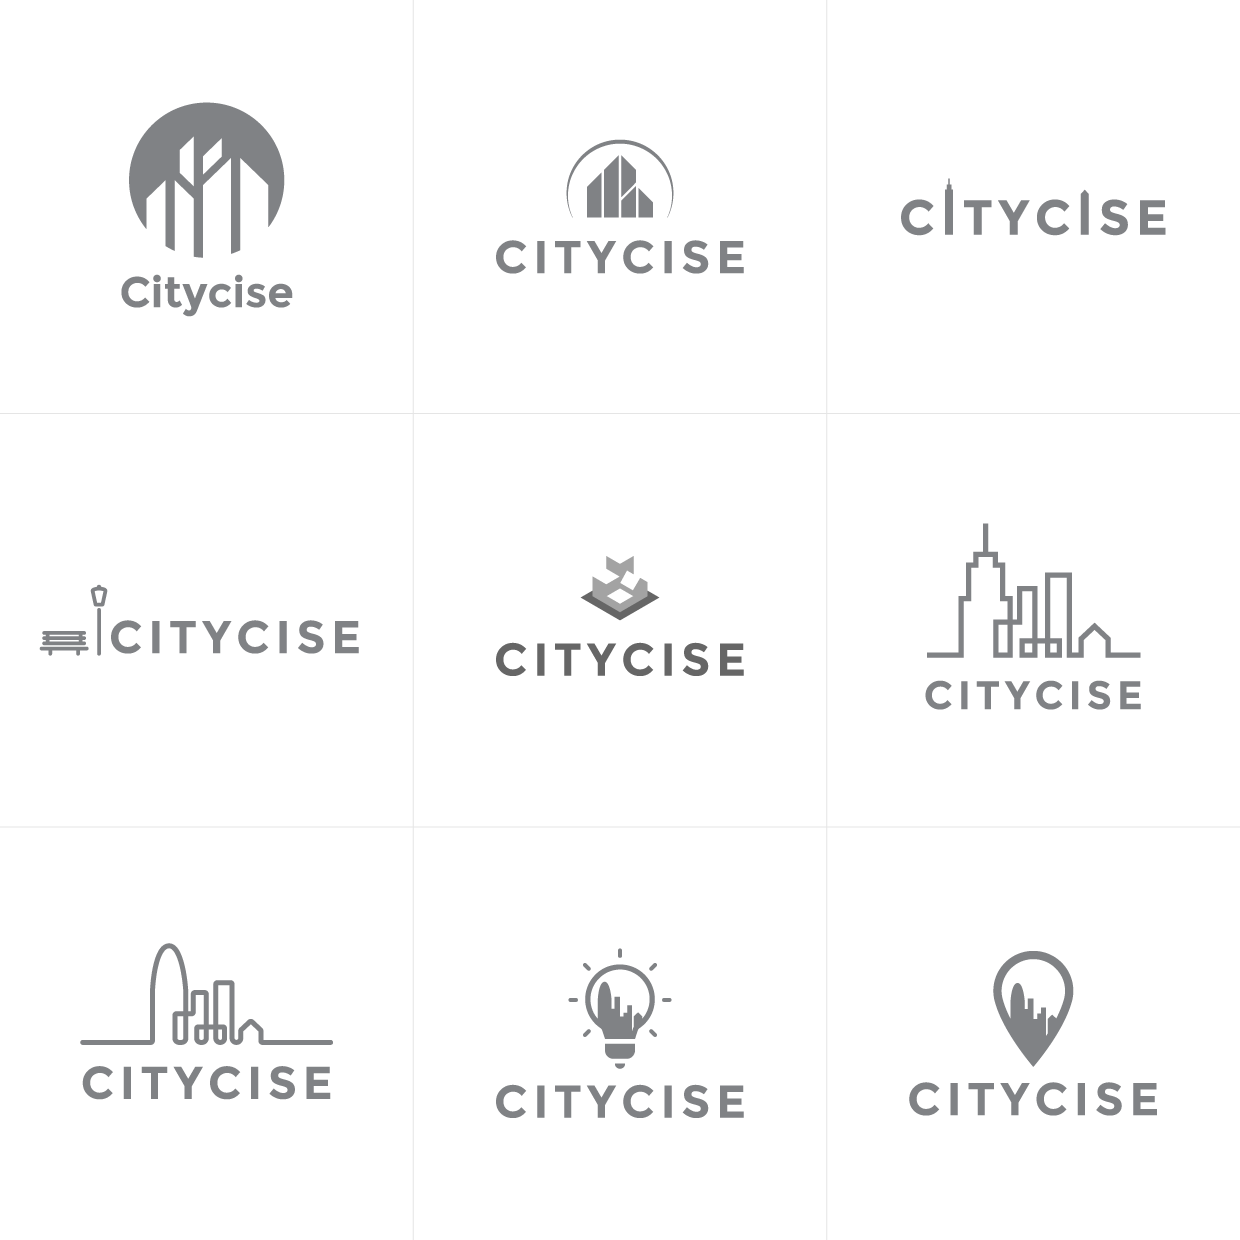 Citycise-logo-1-versions